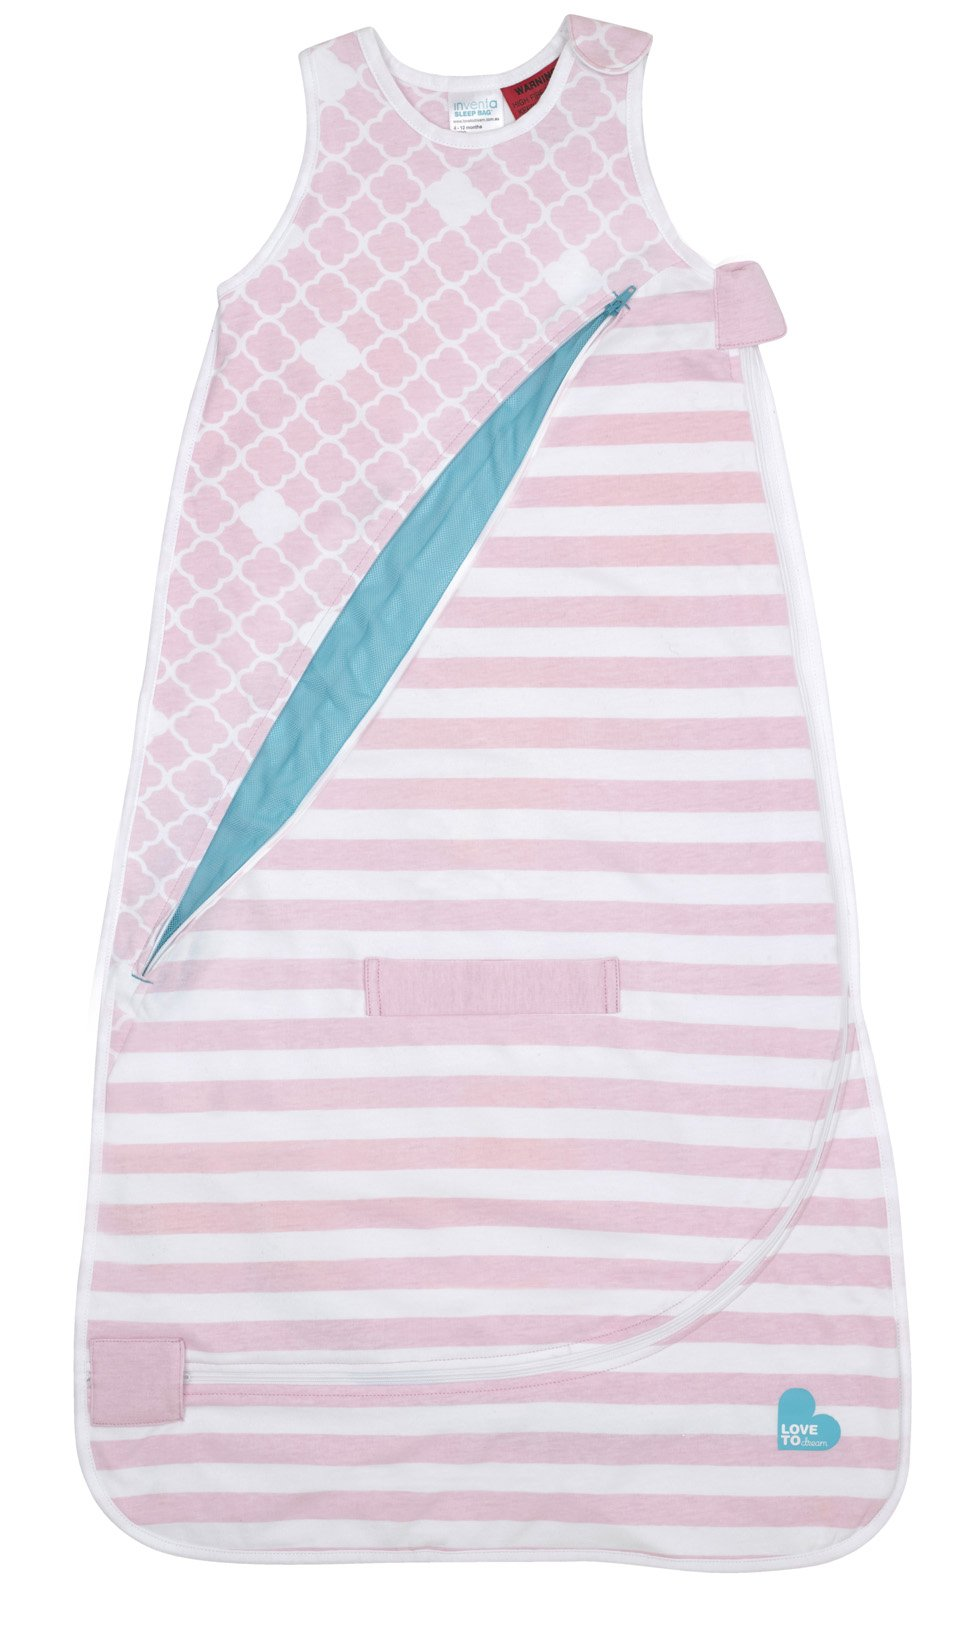 Love To Dream Inventa Lightweight Sleep Bag/Wearable Blanket with Unique Vented Cooling System, Luxurious Super-Soft Cotton, Stylish Fashion Design, 0.5 TOG, 4-12 Months, Light Pink by Love to Dream (Image #2)